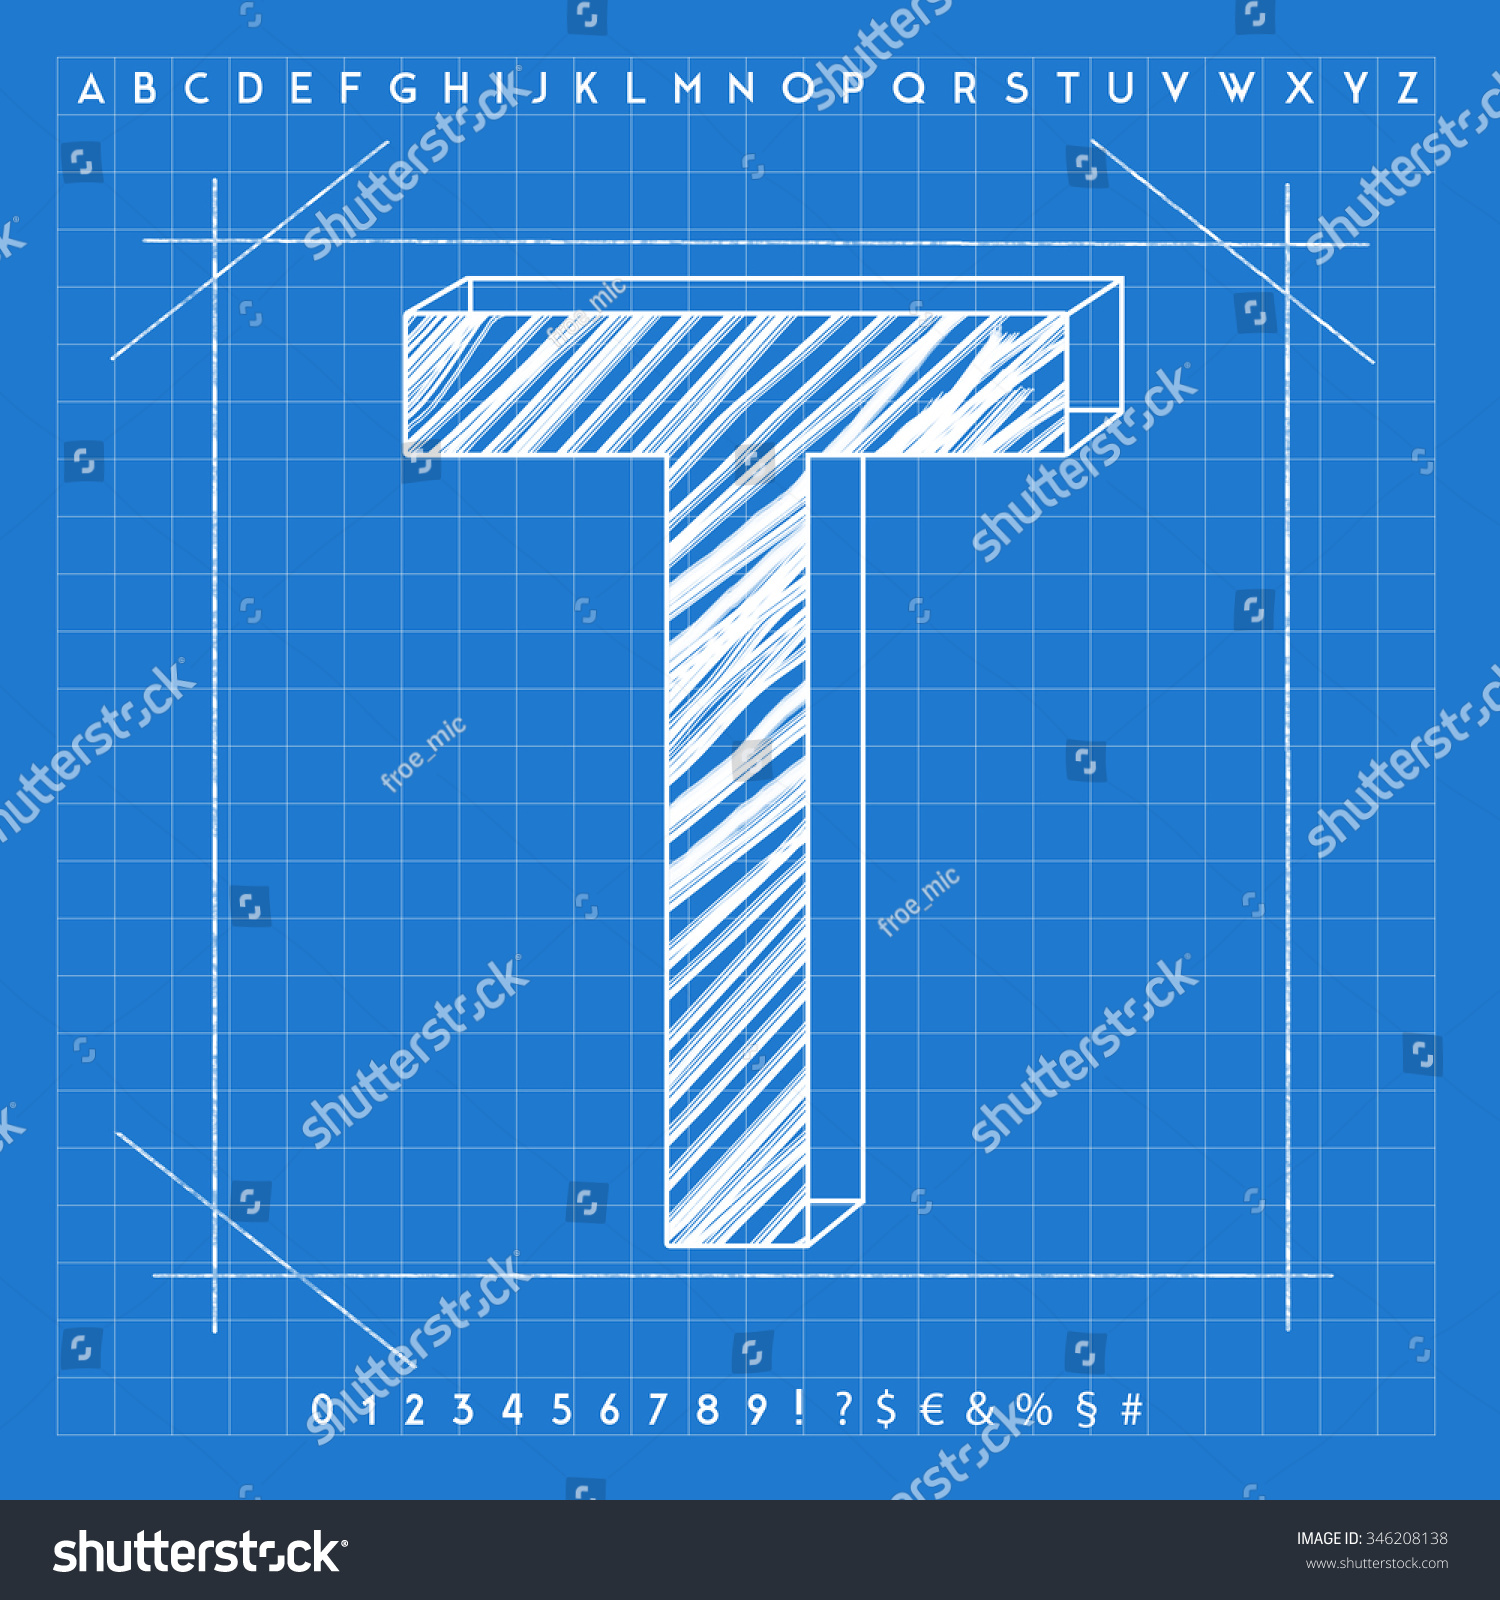 High quality 3d blueprint font letter stock illustration 346208138 high quality 3d blueprint font letter t malvernweather Gallery